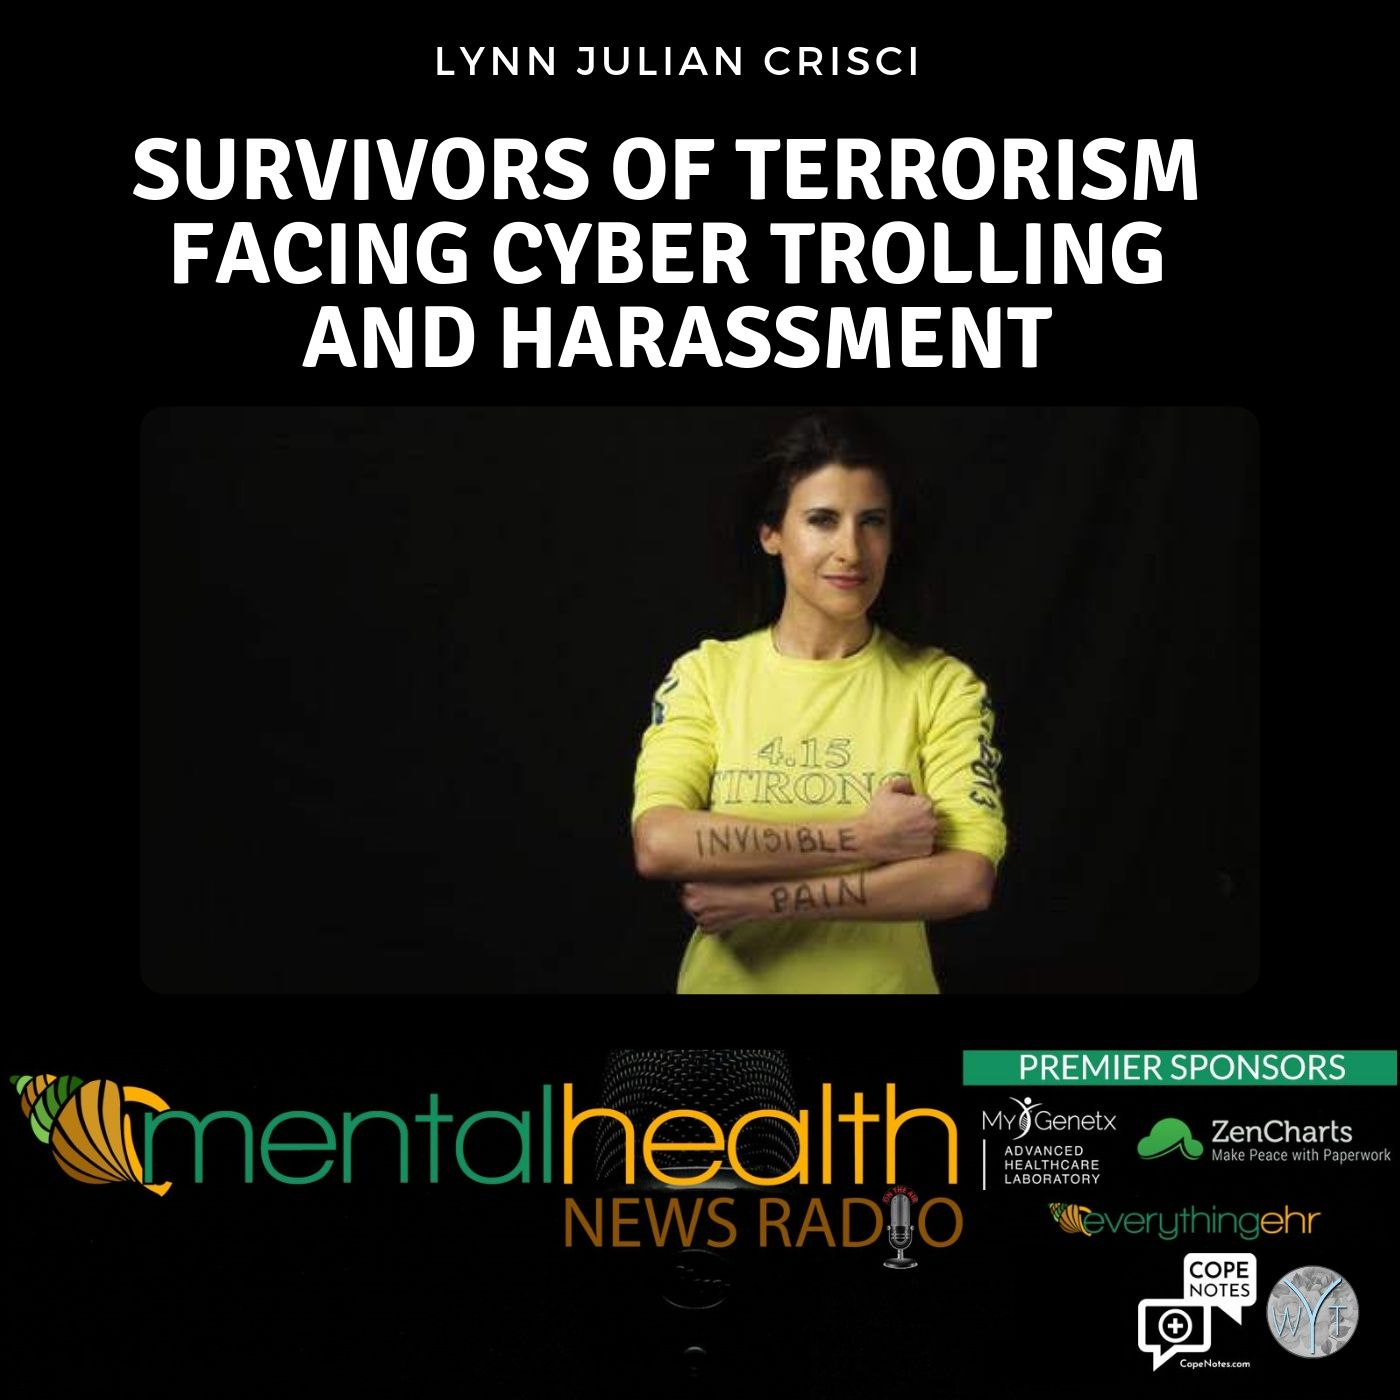 Mental Health News Radio - Survivors of Terrorism Facing Cyber Trolling and Harassment